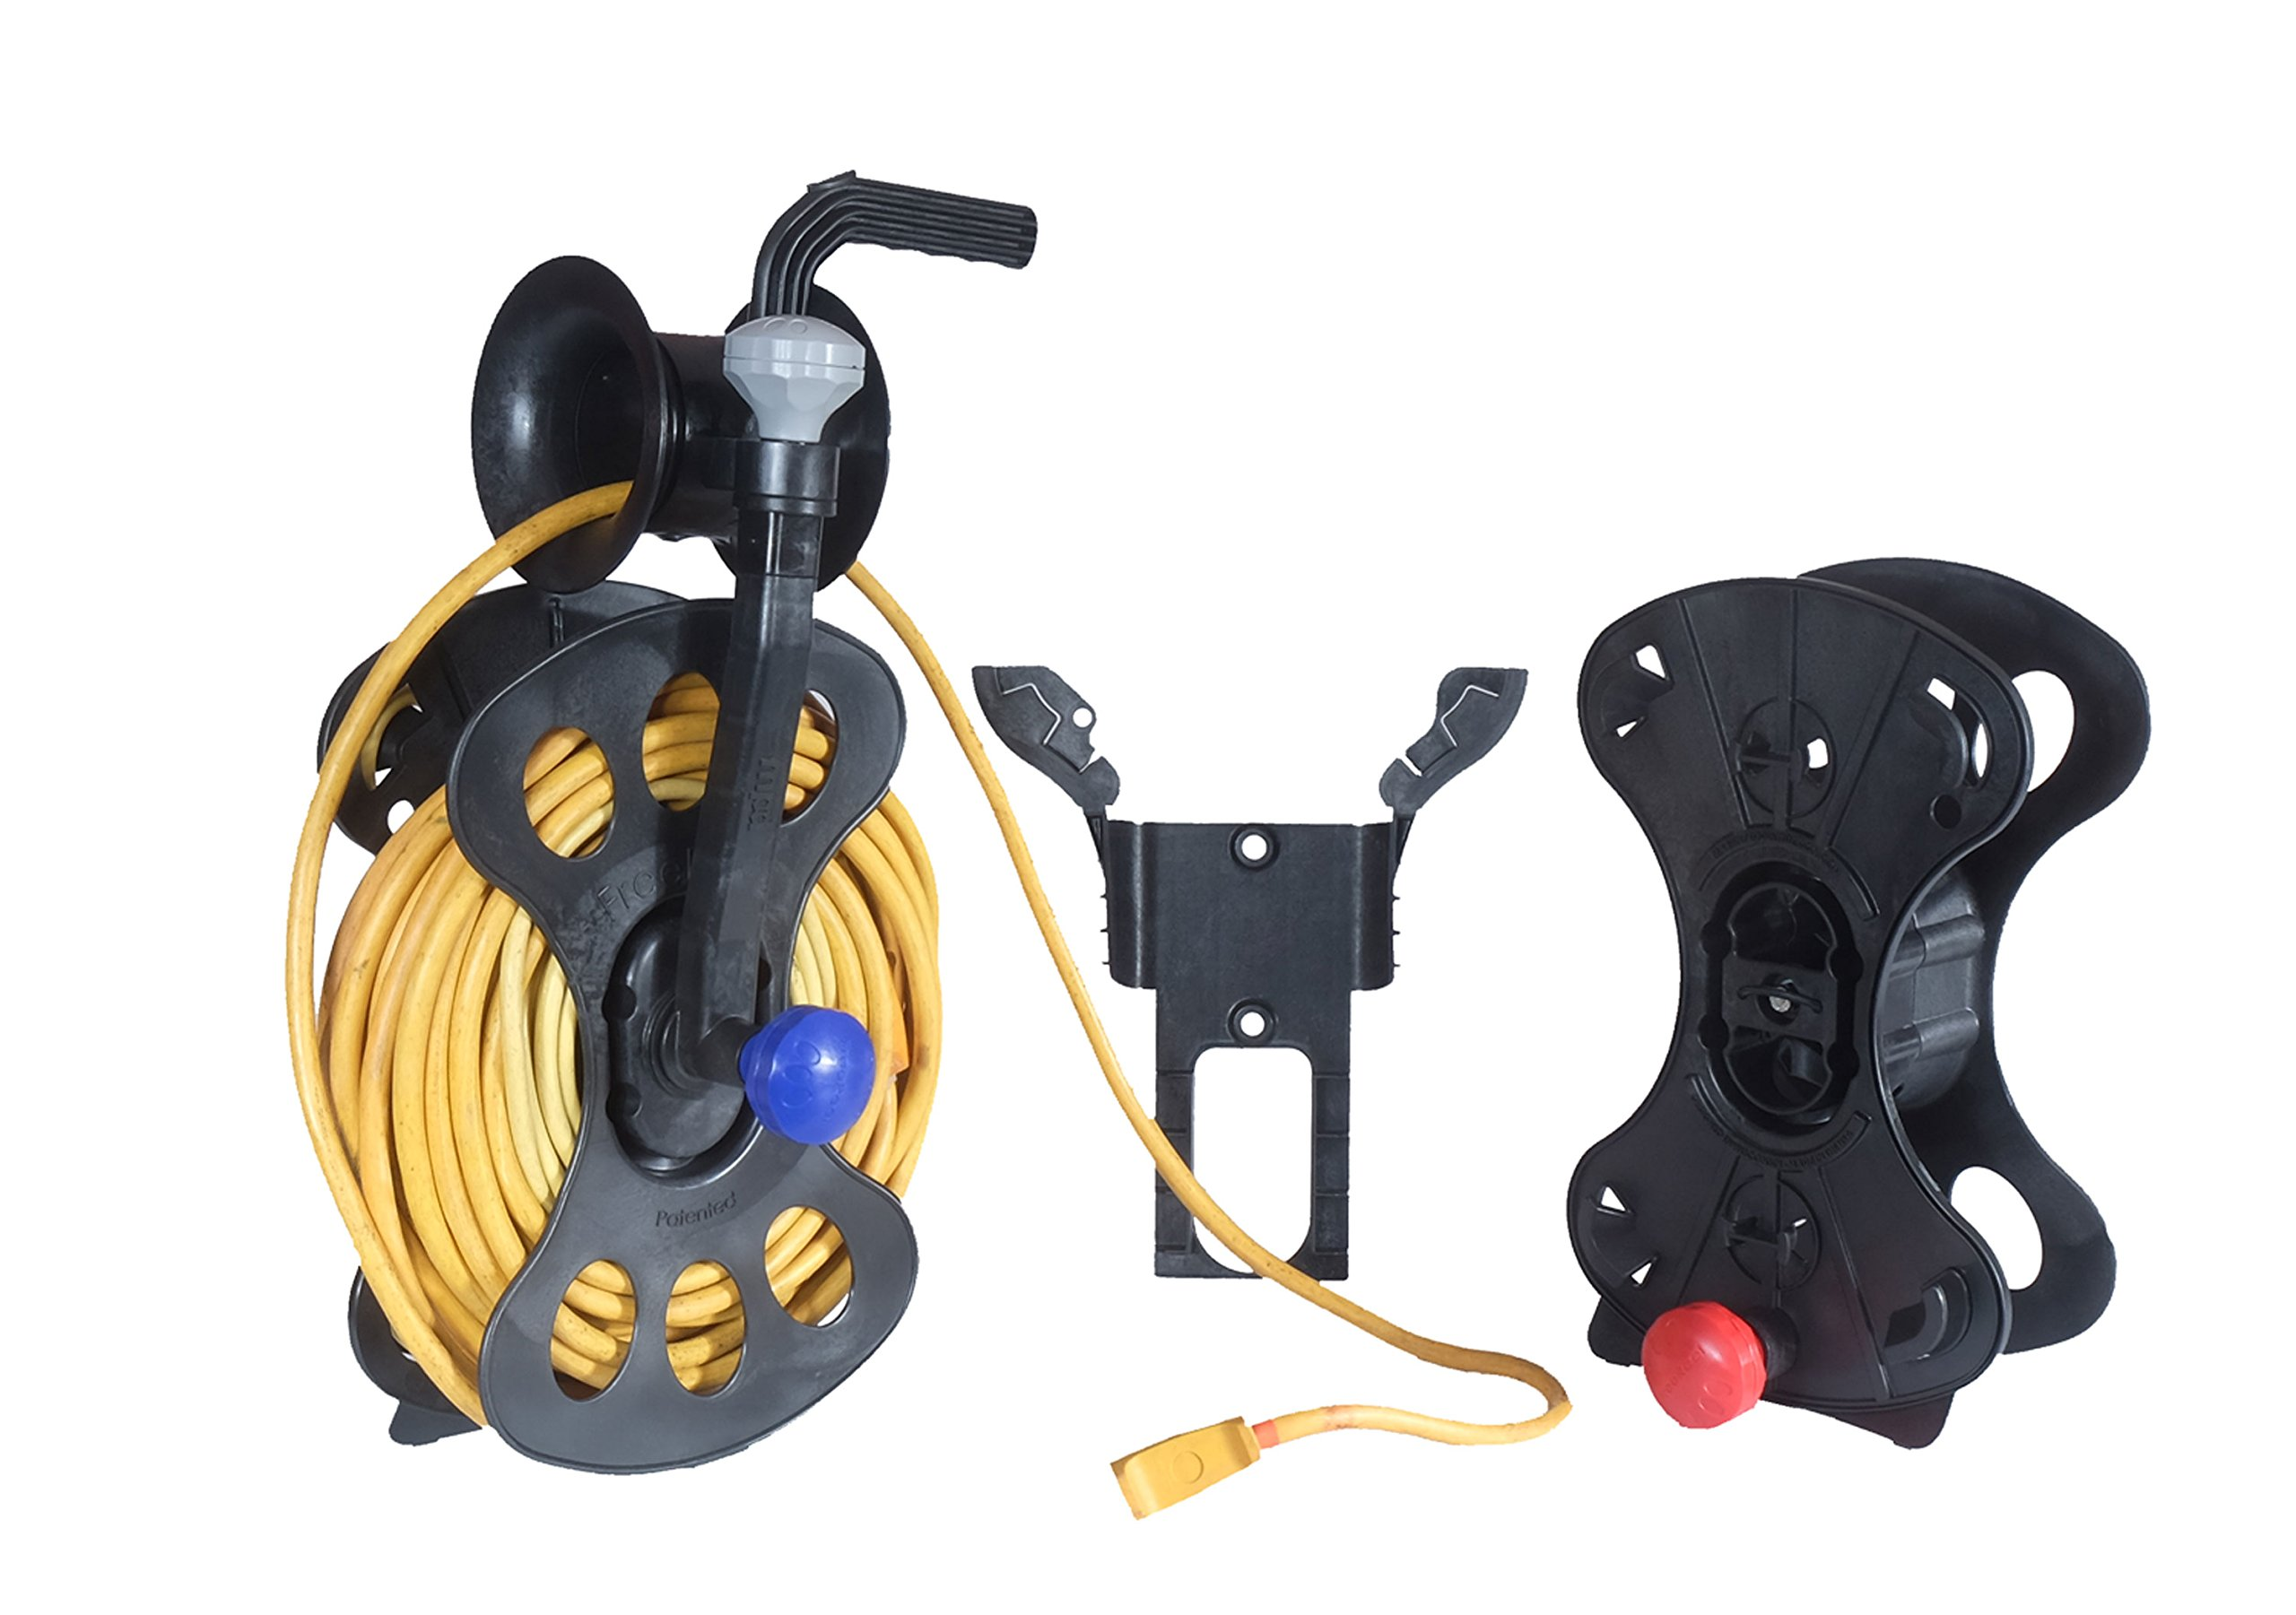 FreeReel - Heavy Duty Extension Cord Reel 100 ft 12/3, Air Hose Reel - Cord, Hose and Cable Storage Organizer - Includes 2 Storage Cassette Reel, 2 Precision Guide/Winder, 2 Wall Storage Mount by FreeReel (Image #8)